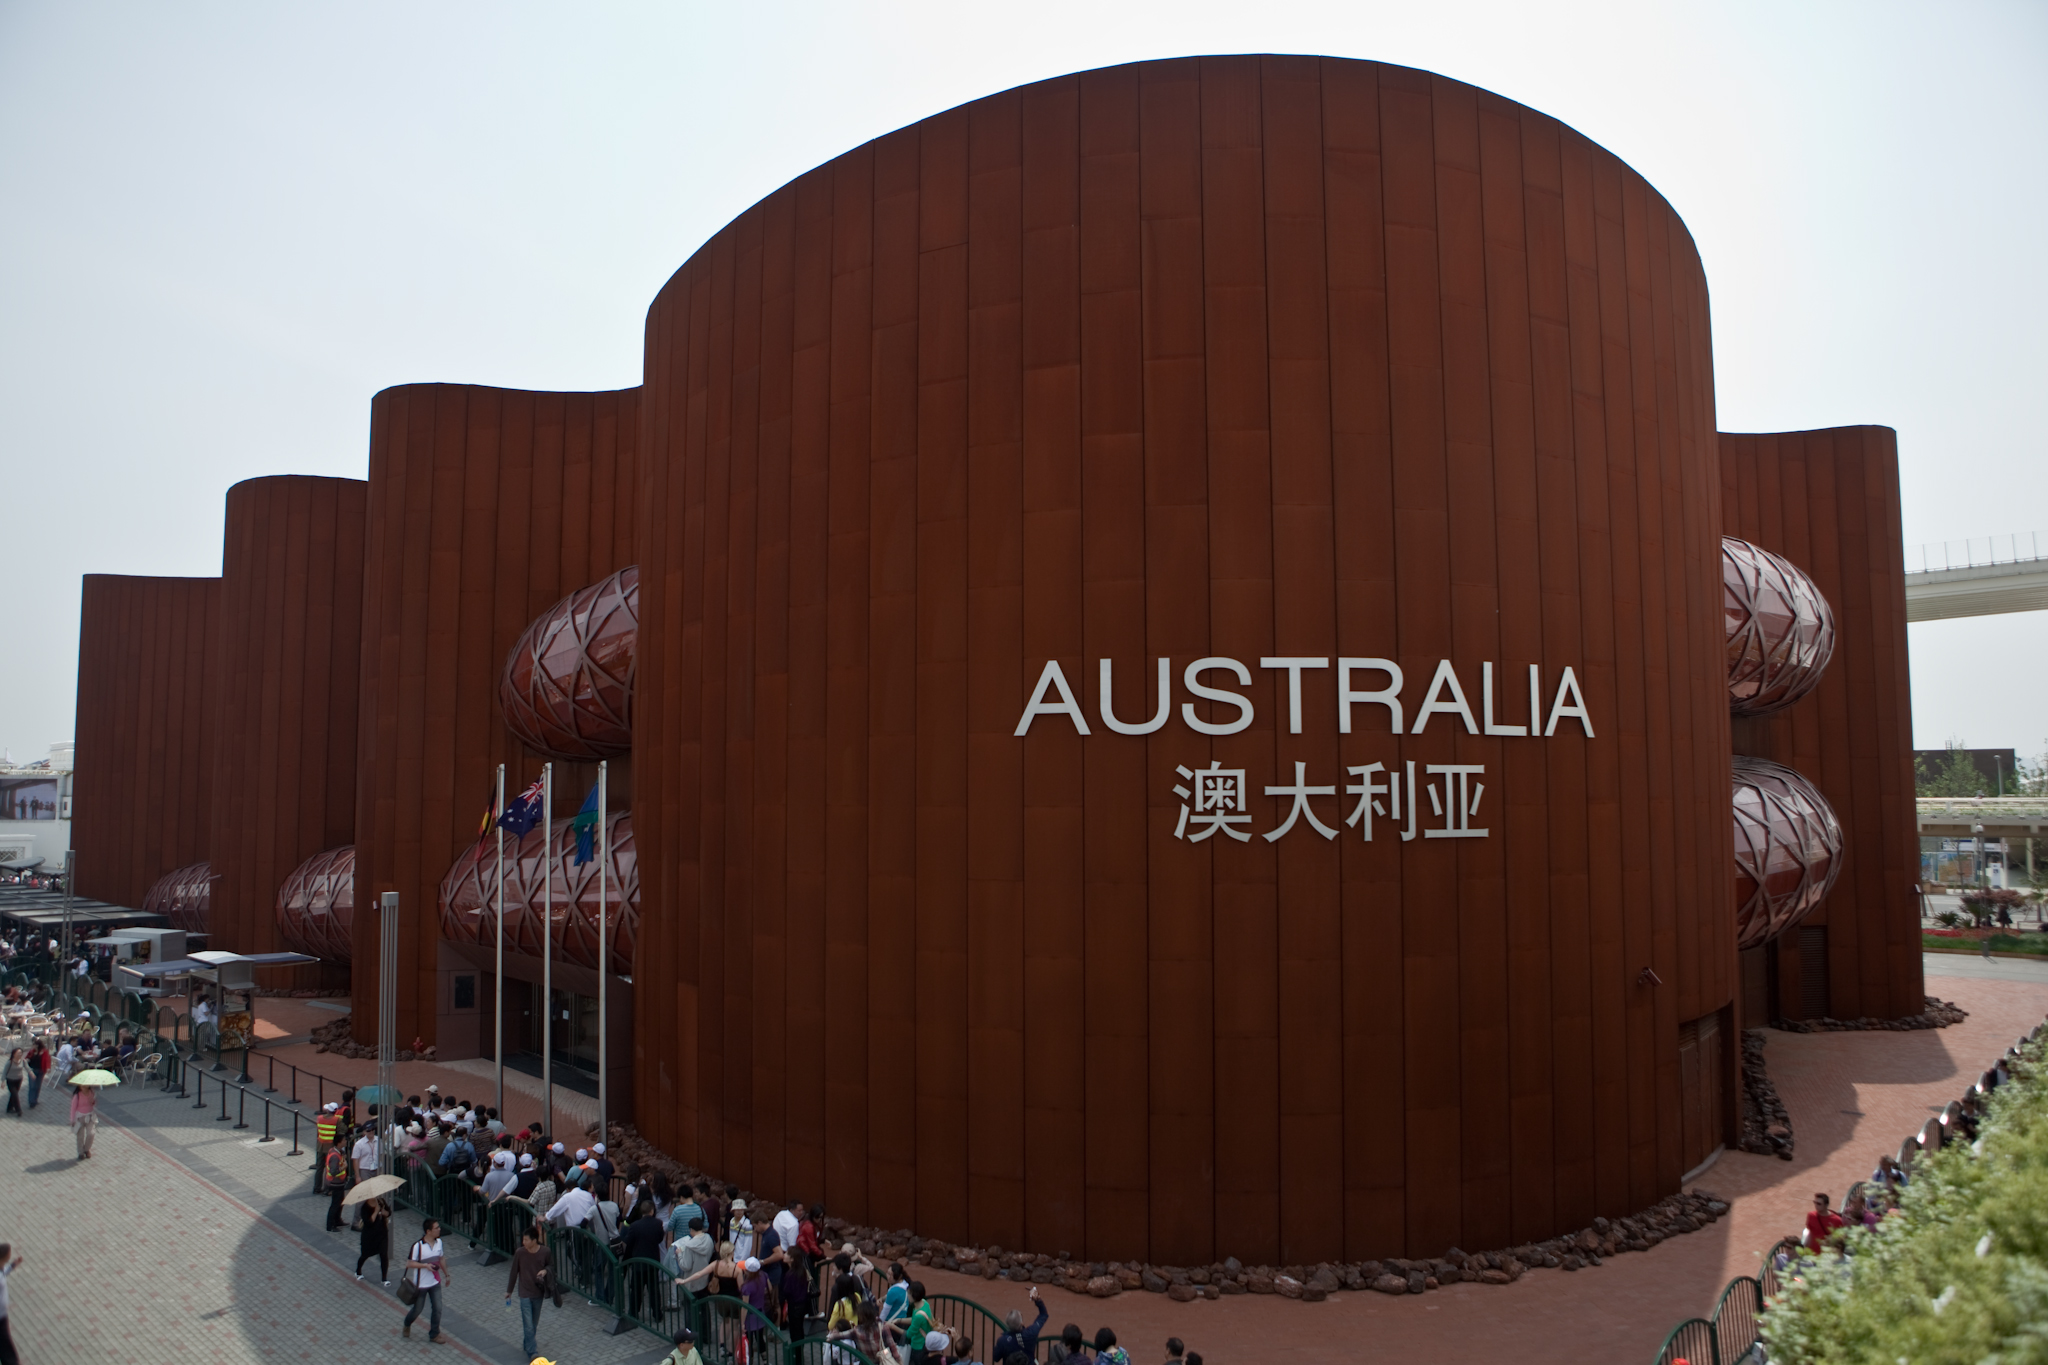 File:Australia\u0027s Pavillion at the 2010 World Expo in Shanghai.jpg ...